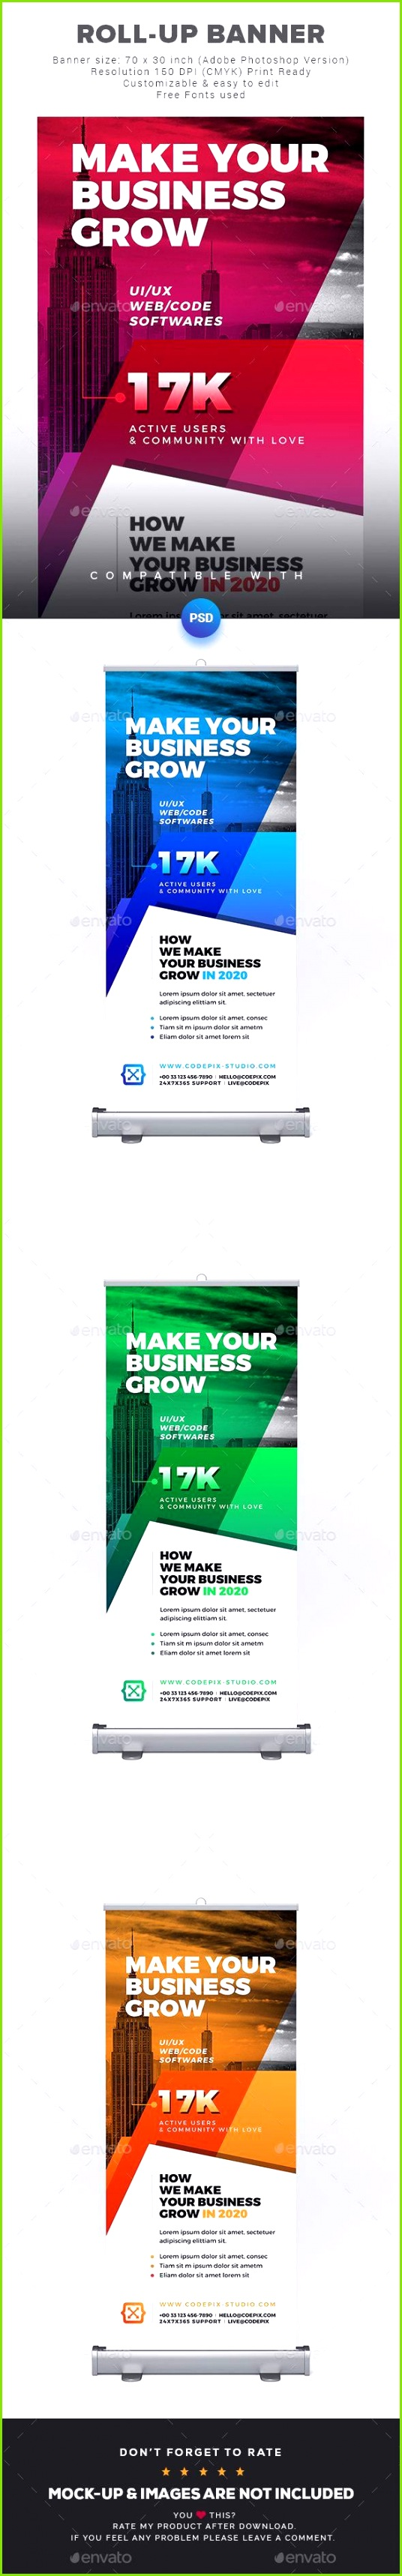 1822 best Roll Up Banner Templates images on Pinterest